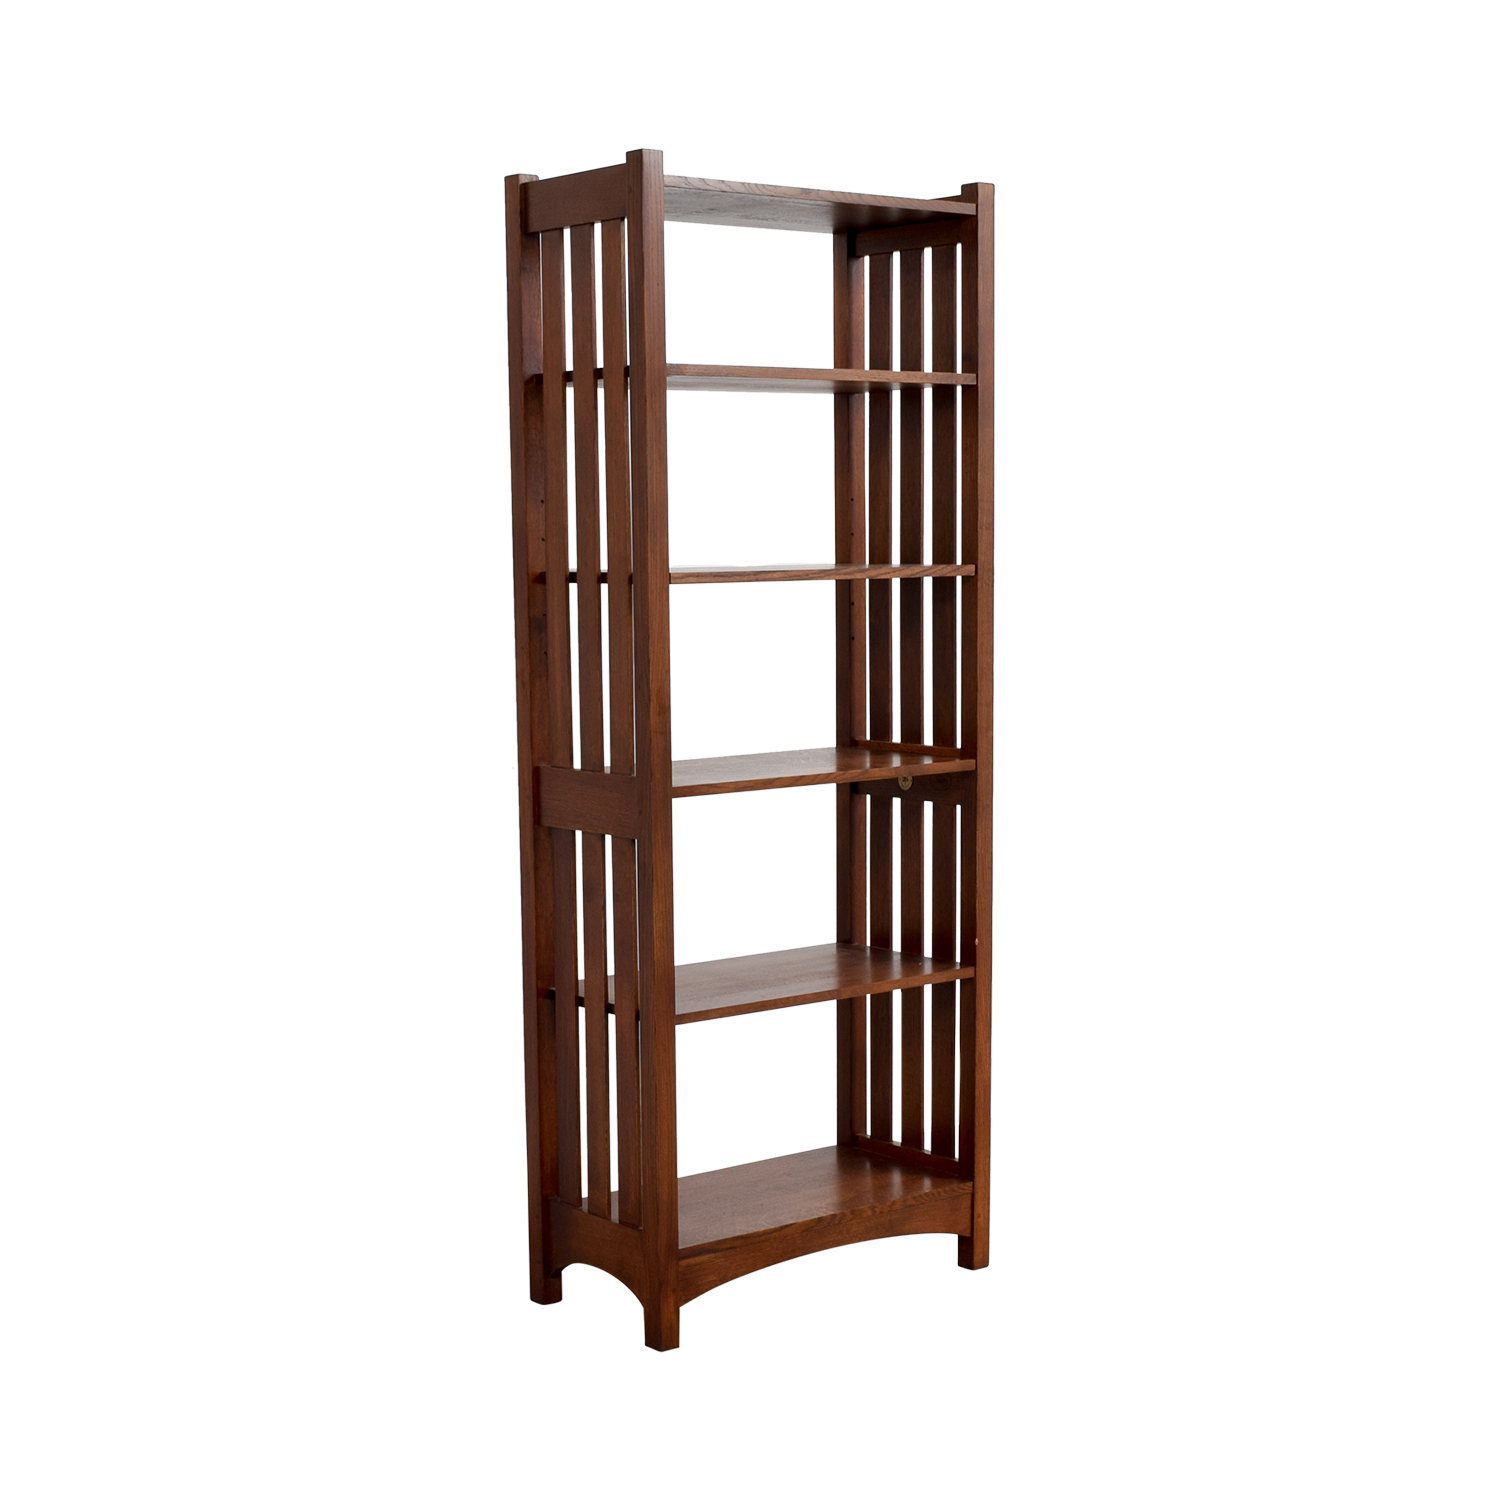 ABC Carpet and Home Wood Caged Bookcase / Bookcases & Shelving